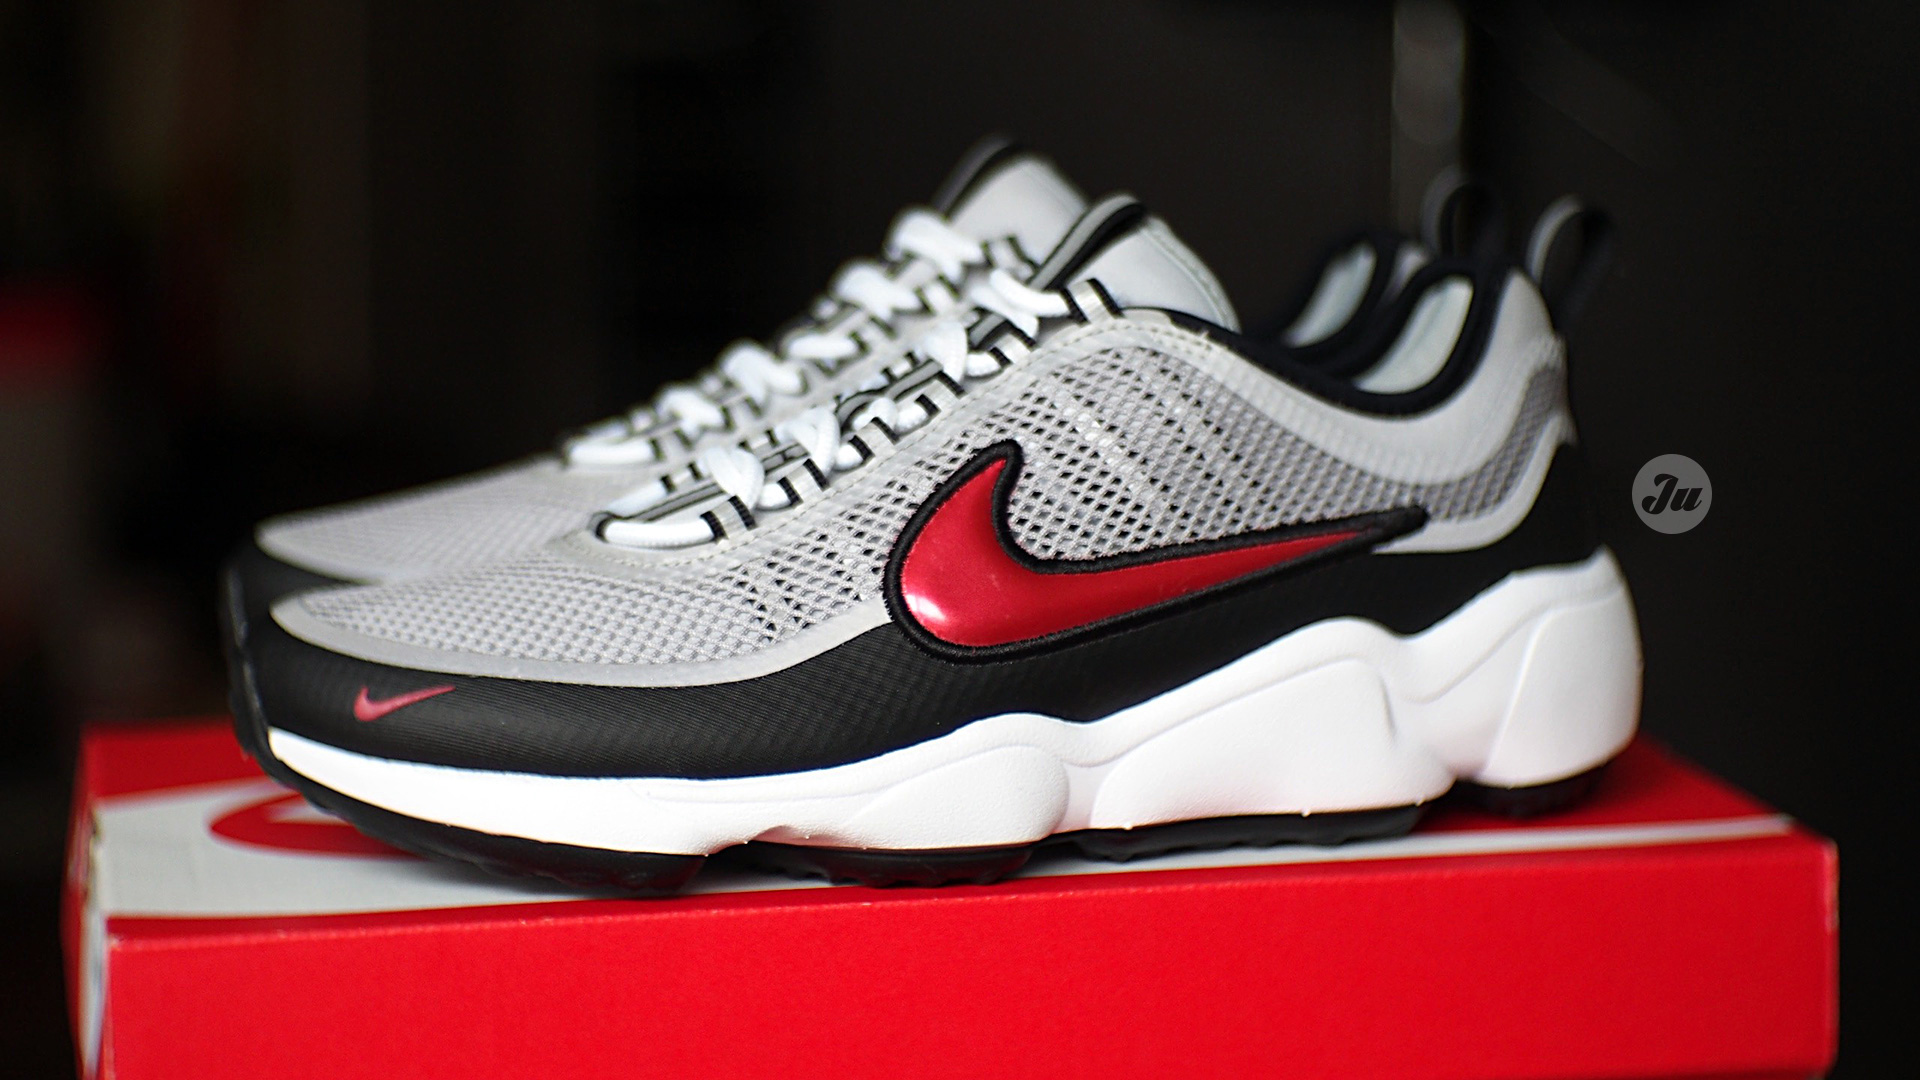 nouvelle arrivee 4db98 690ec Review w/ on-feet video] Nike Air Zoom Spiridon Ultra 'OG ...